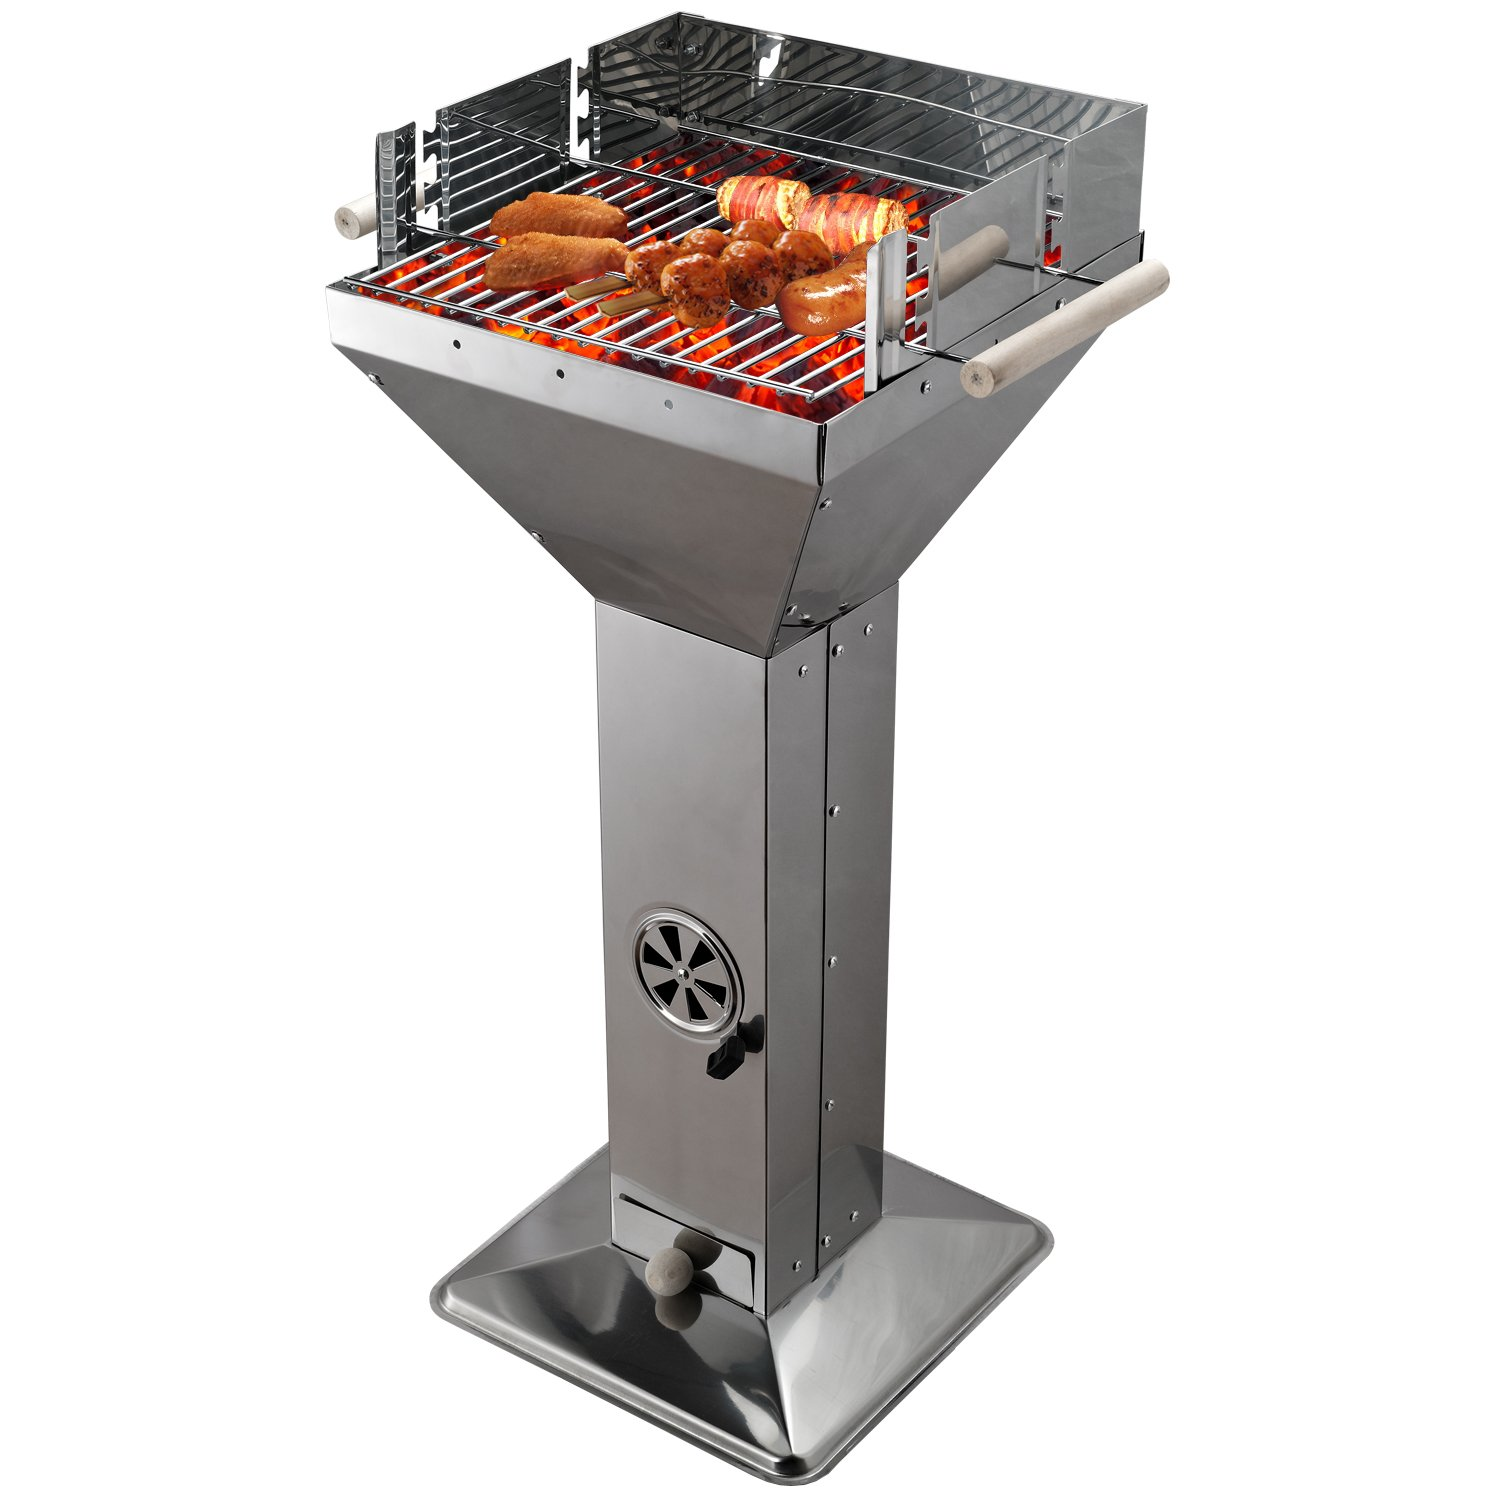 com t decent grills take yardmasterz some expect up best george but for element heating has that produce does heat updated forman it bbq pedestal can once the job don blistering s food to grill time warm a gf electric smaller